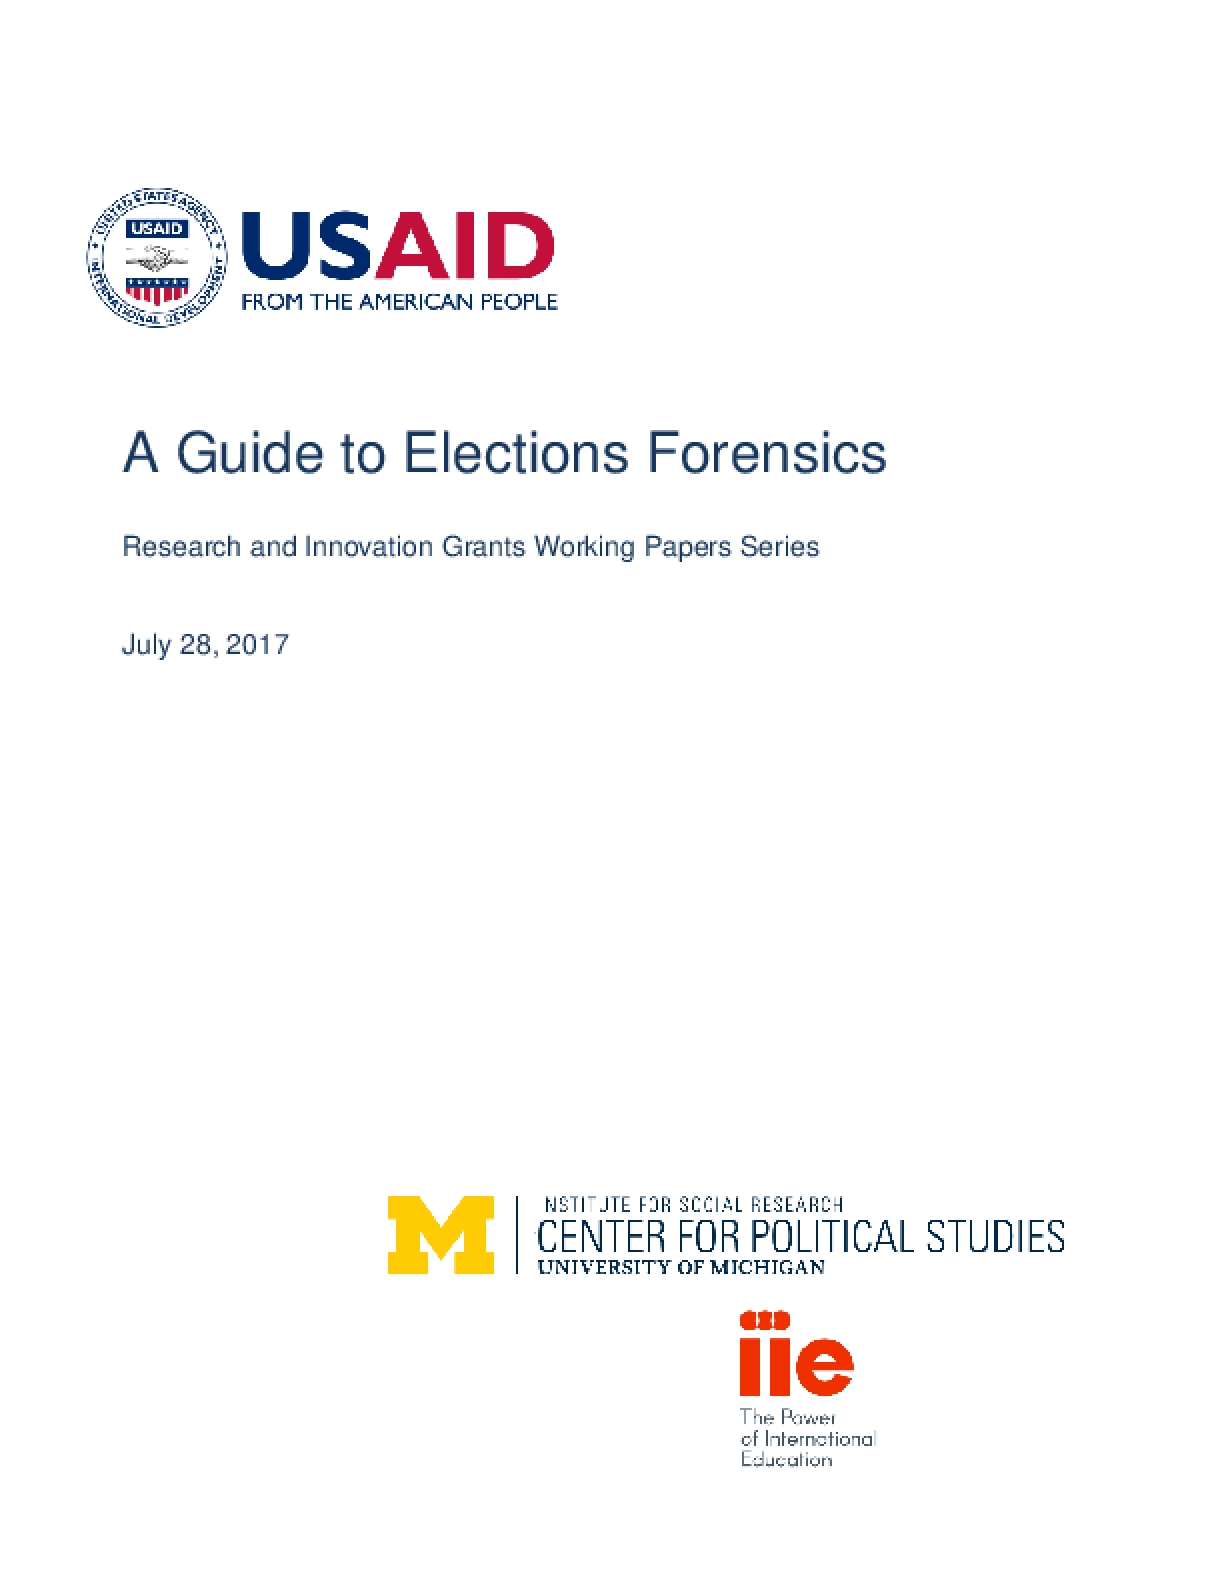 Election Forensics Toolkit and Guide (2017)